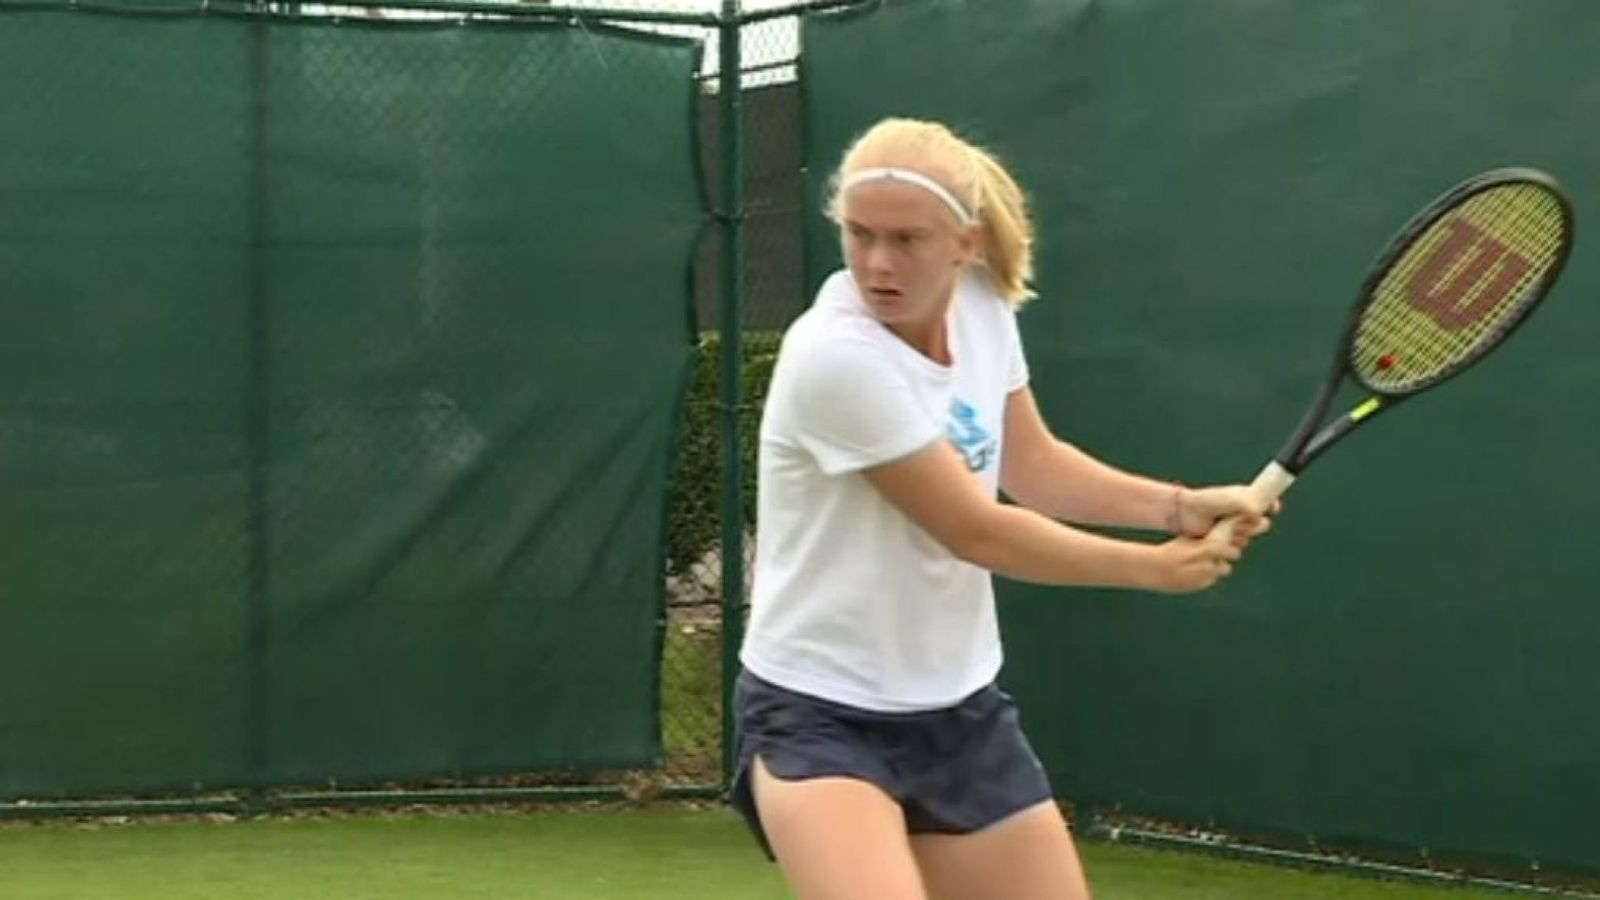 wimbledon wild card with genetic disorder has 'no limits